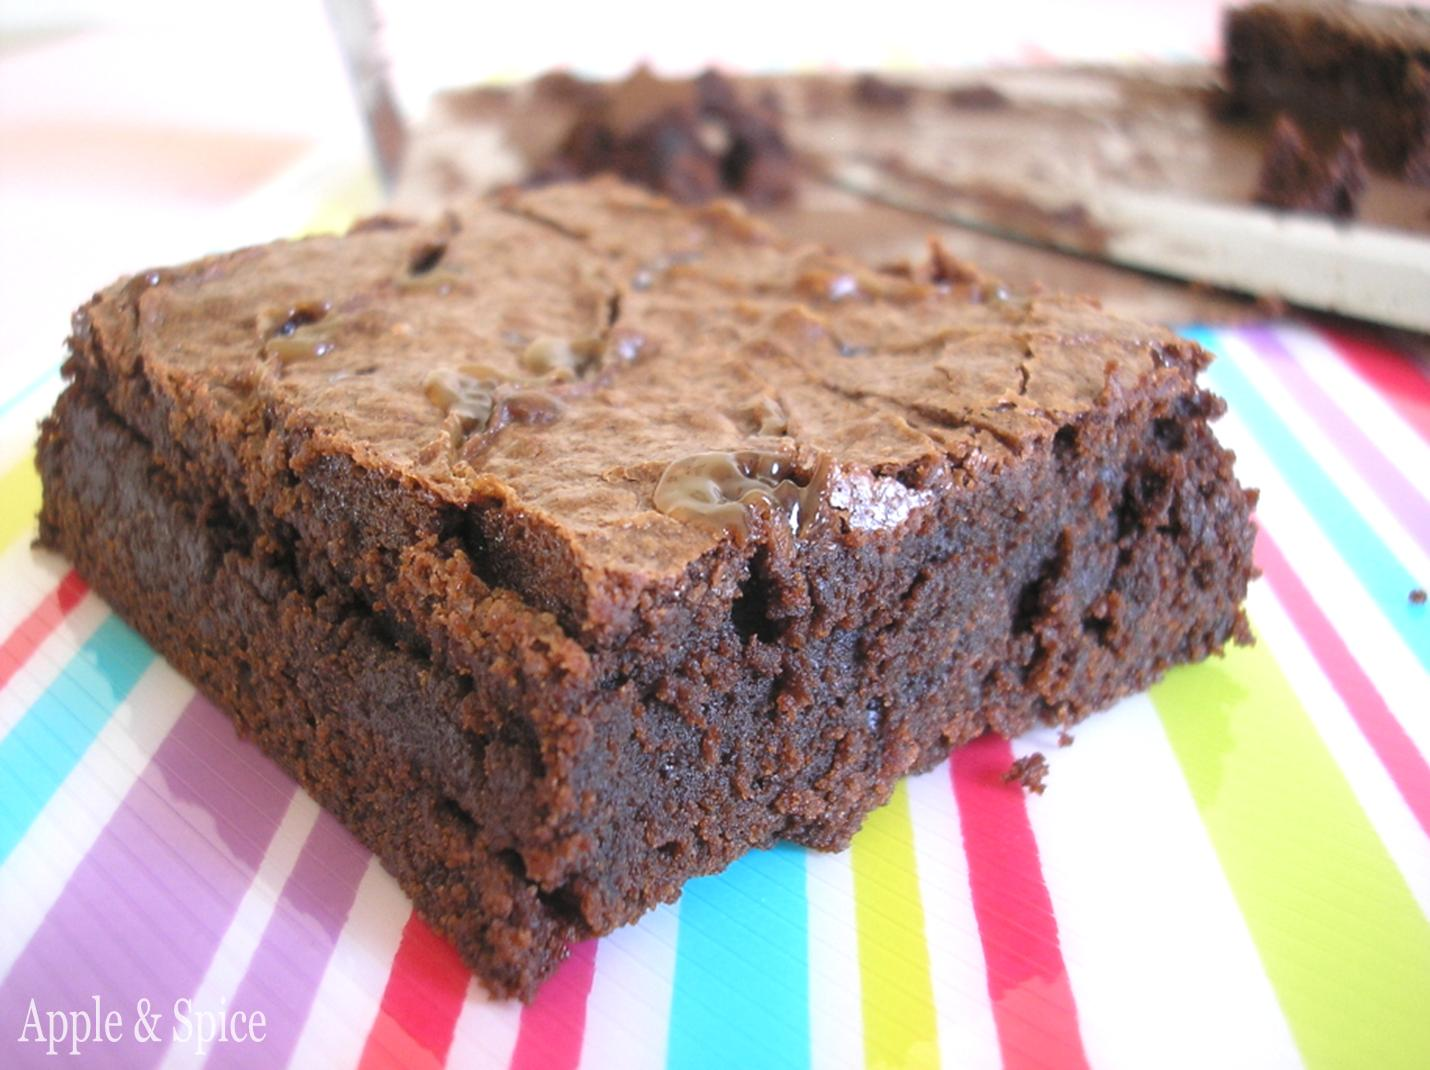 Apple & Spice: Chocolate Salted Caramel Brownies